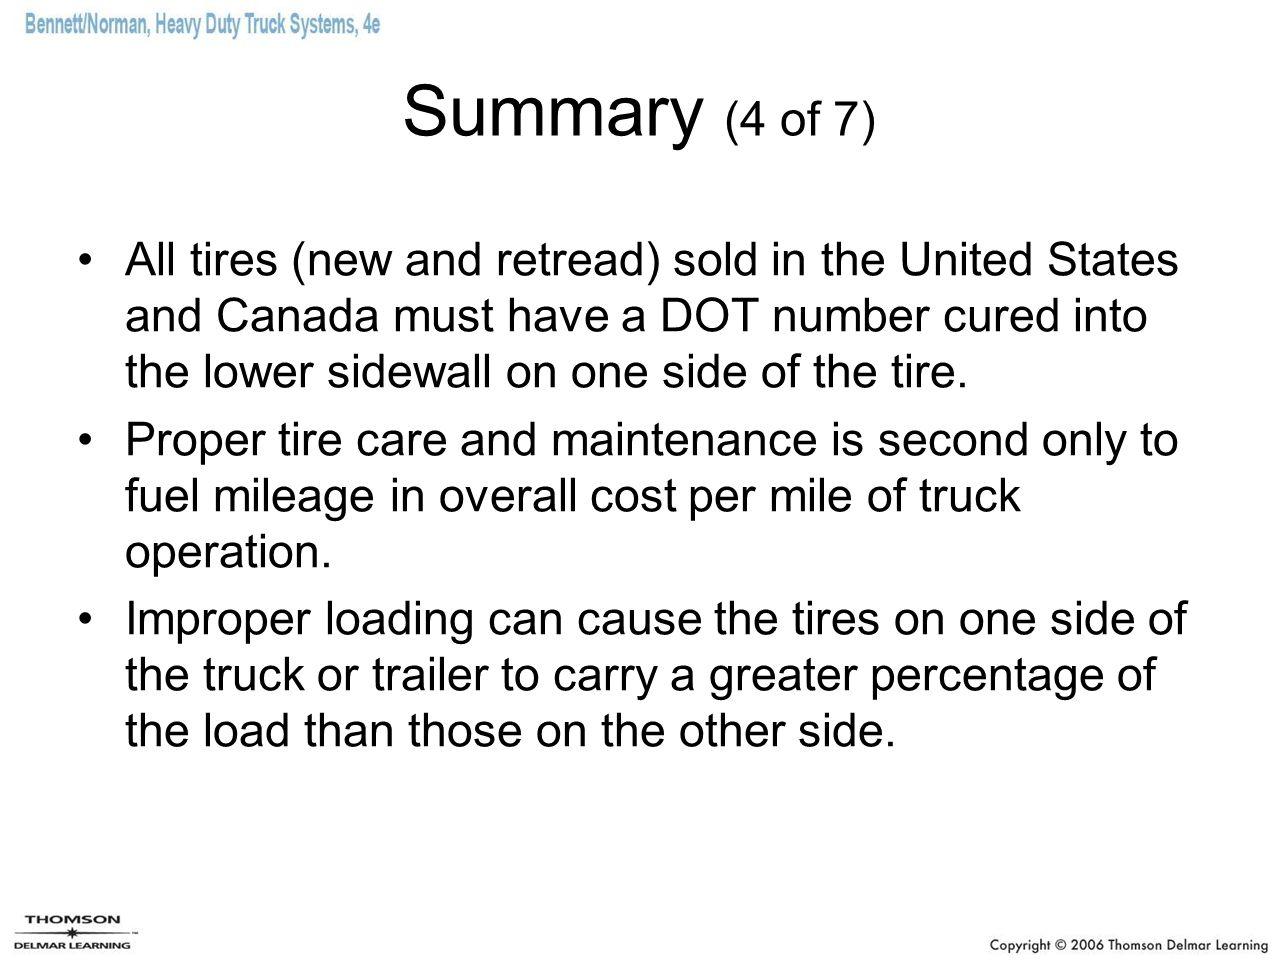 Summary (4 of 7) All tires (new and retread) sold in the United States and Canada must have a DOT number cured into the lower sidewall on one side of